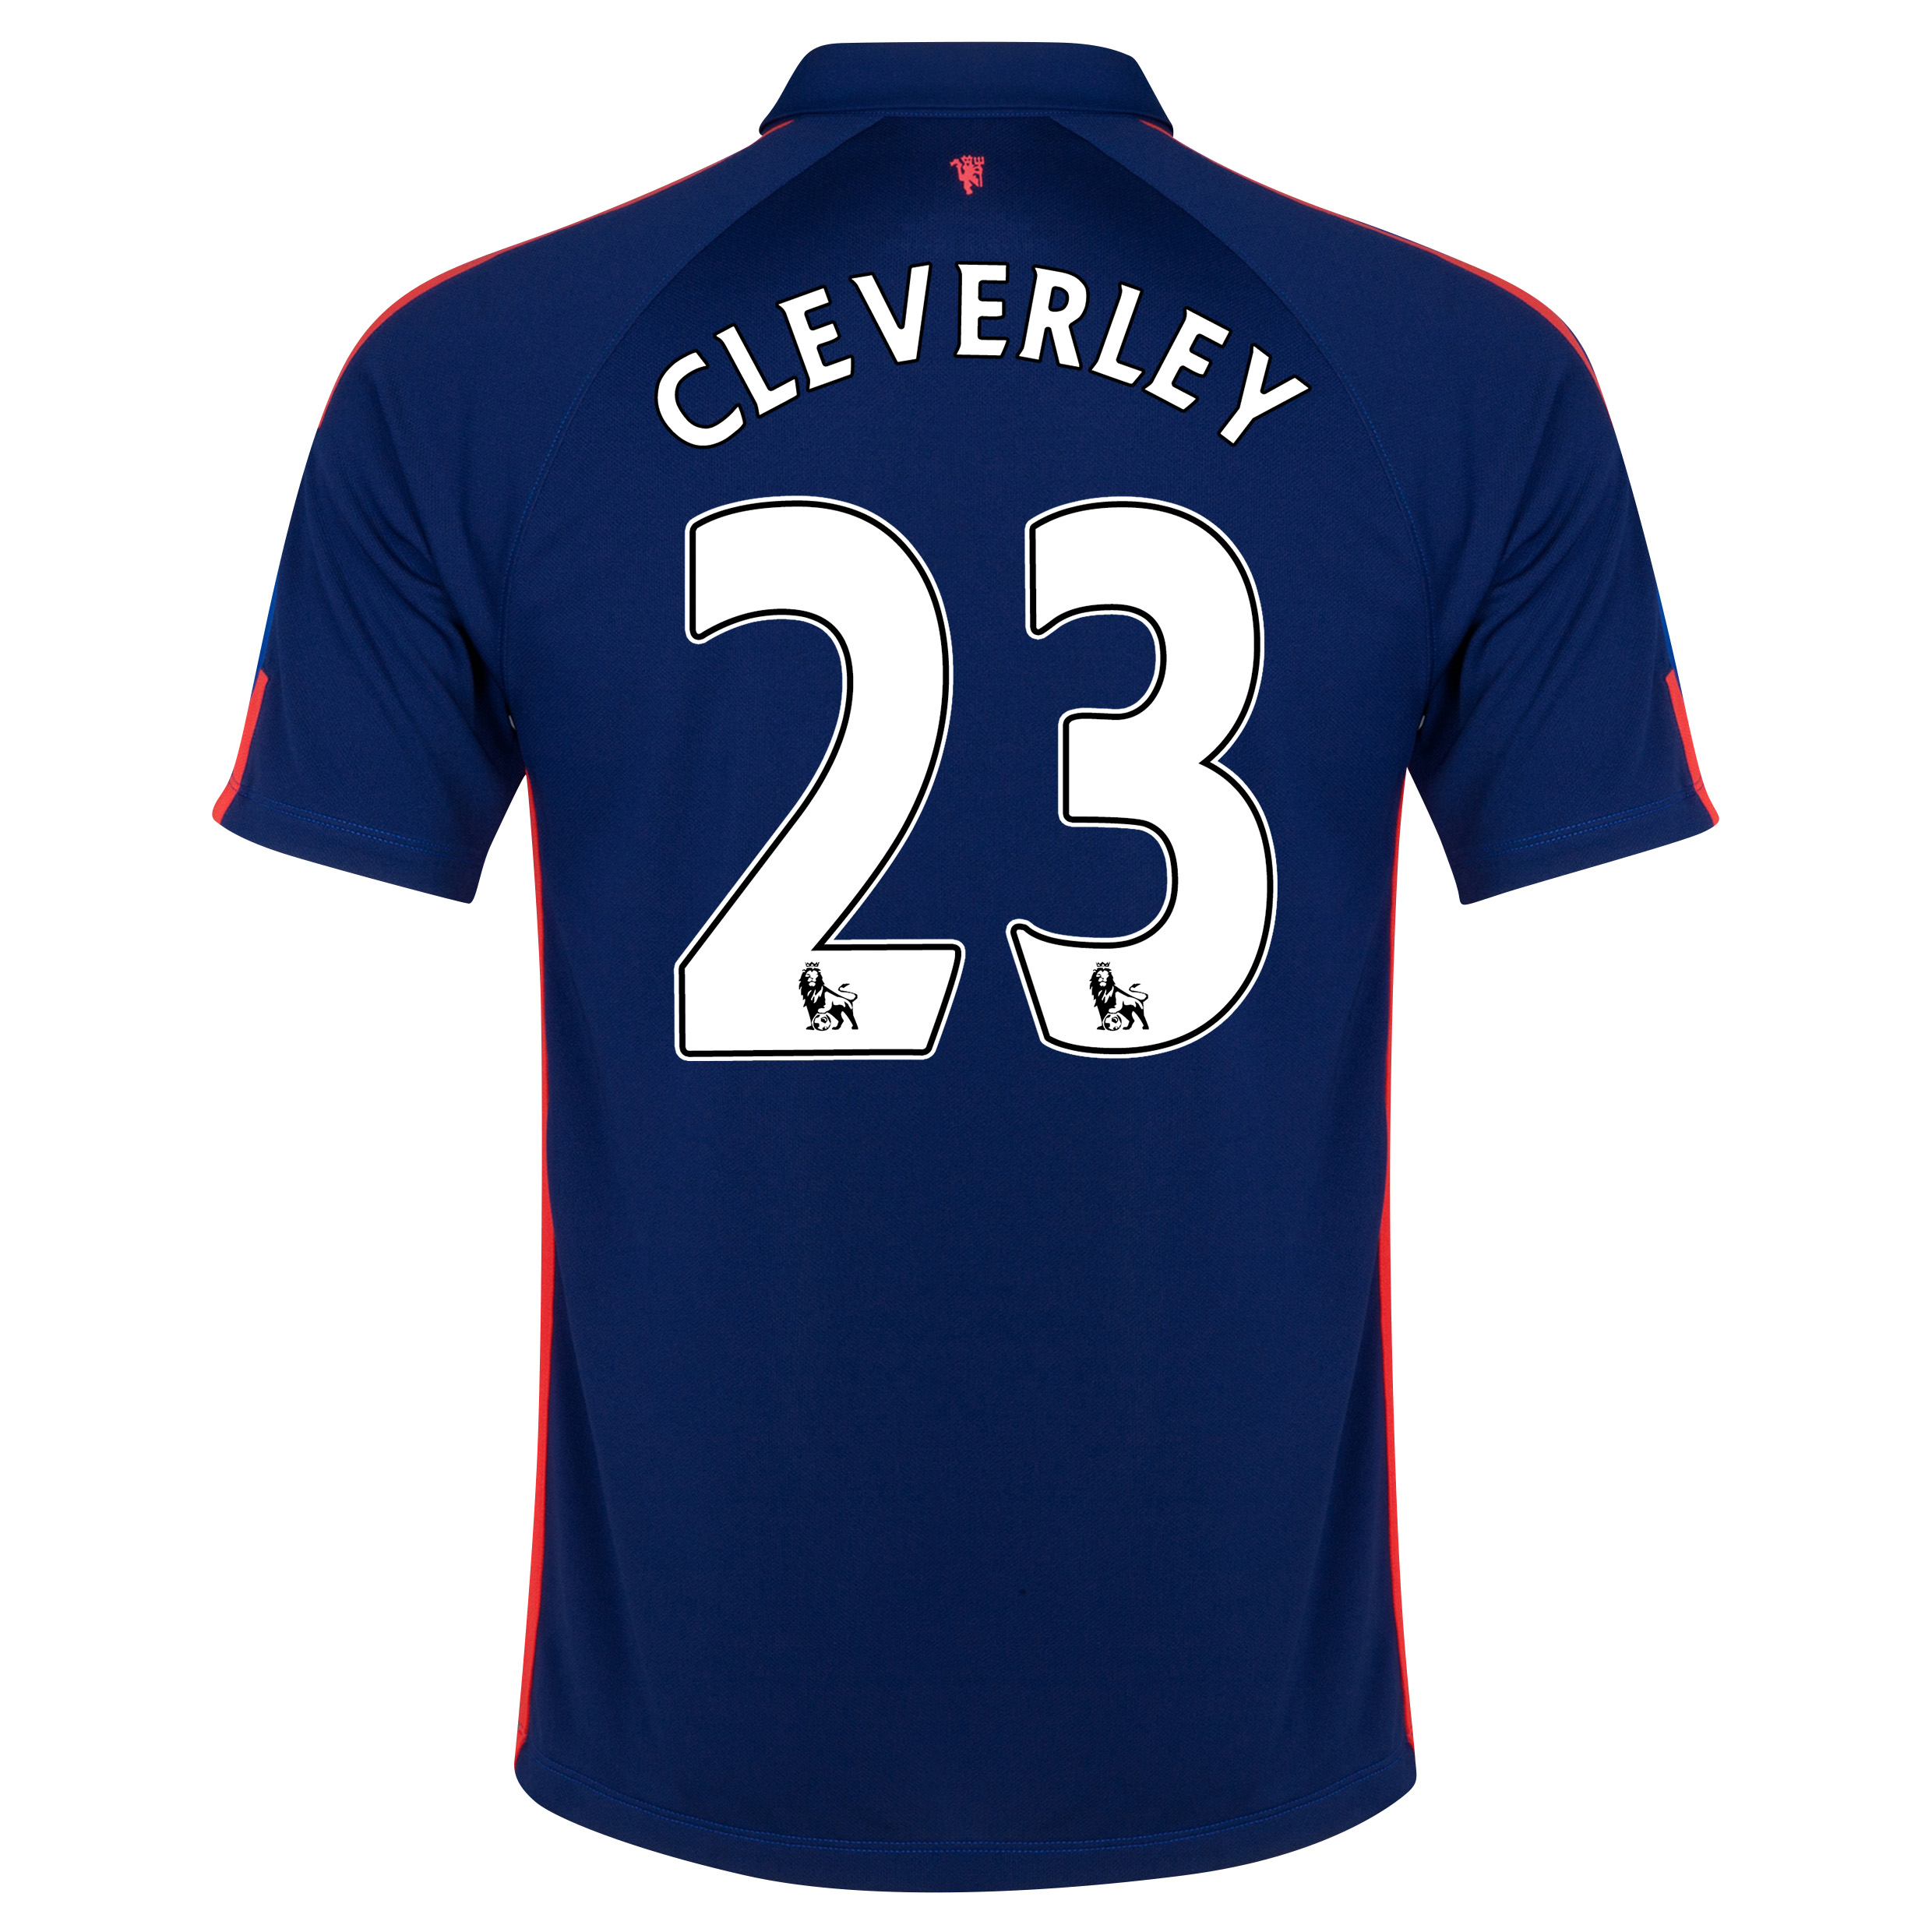 Manchester United Third Kit 2014/15 - Little Boys with Cleverley 23 printing